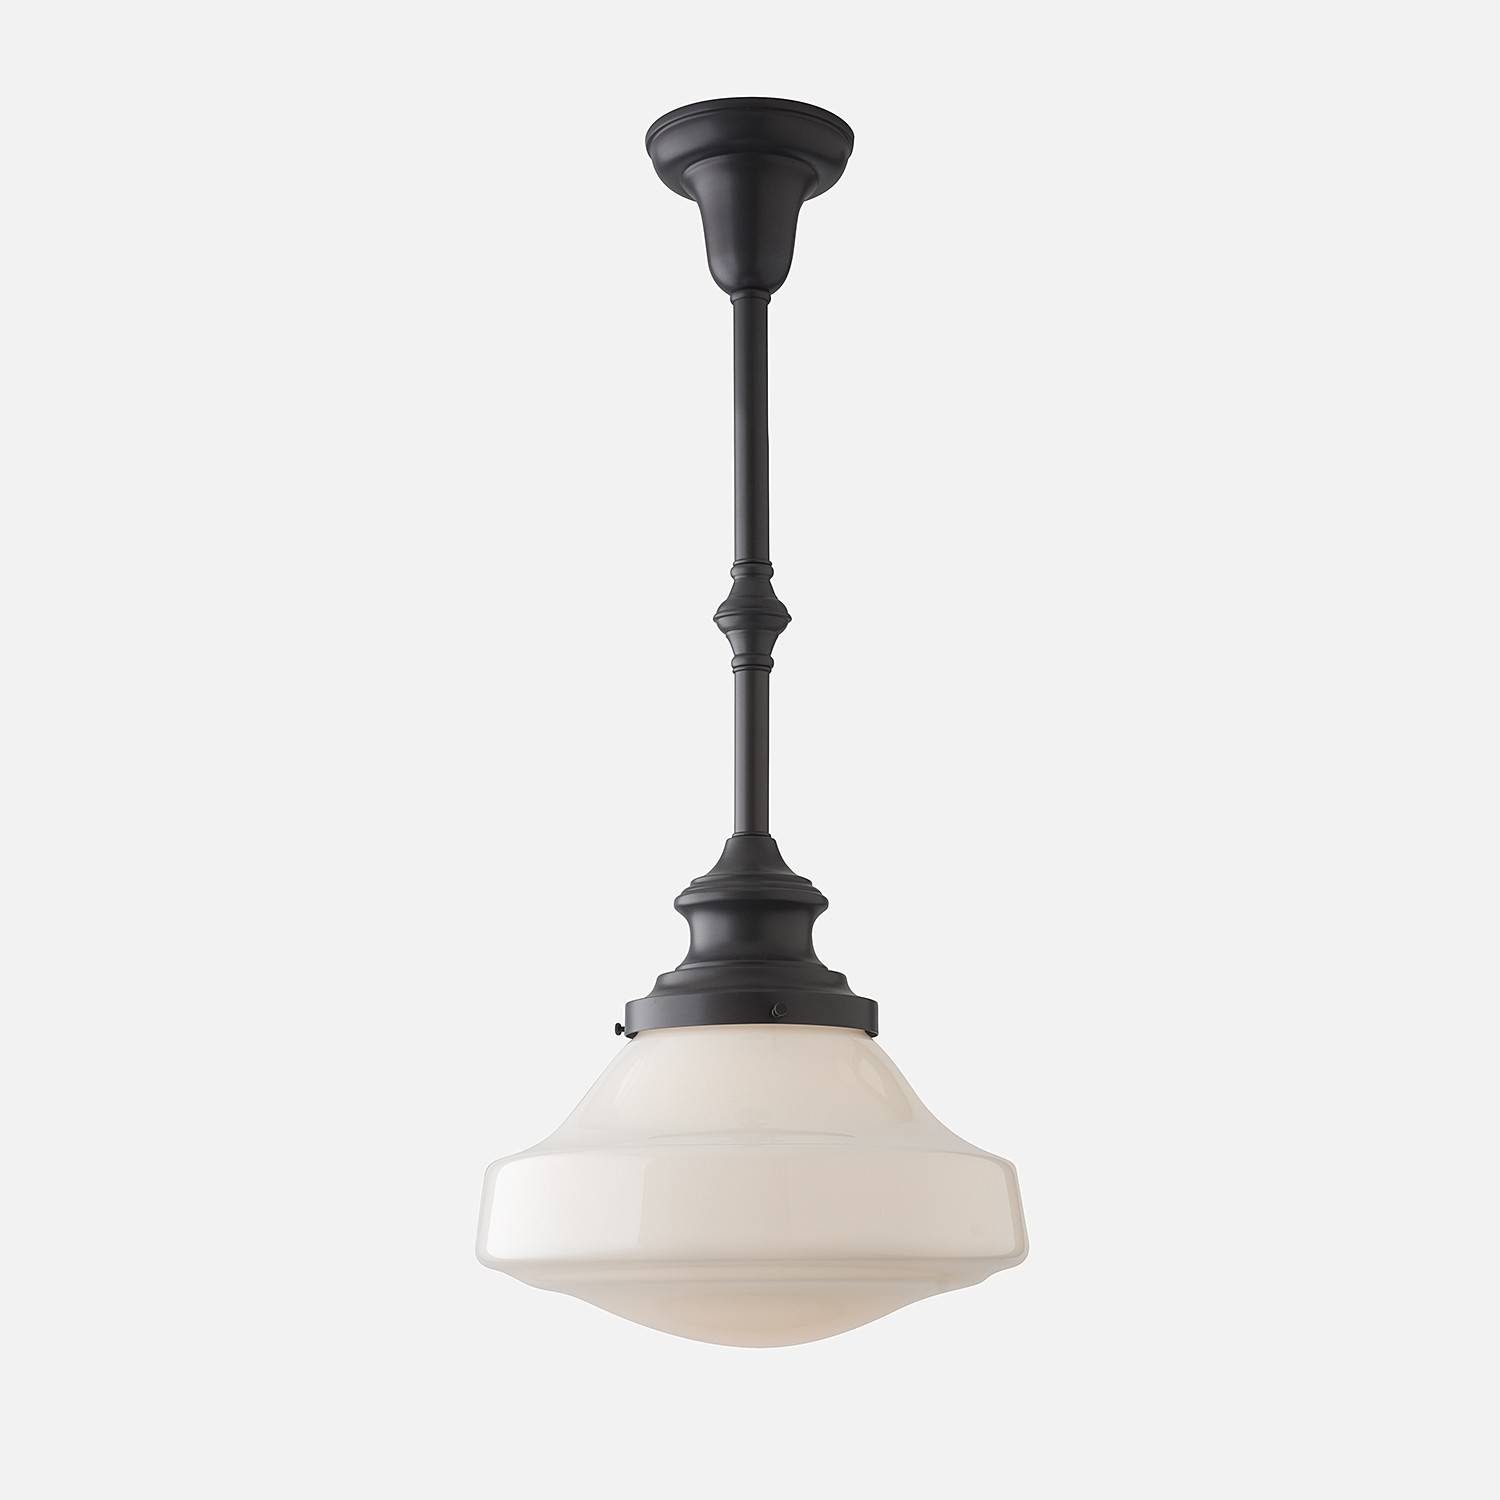 Antique Schoolhouse Pendant Light — All About Home Design : How To With Regard To Schoolhouse Pendant Lighting (View 7 of 15)